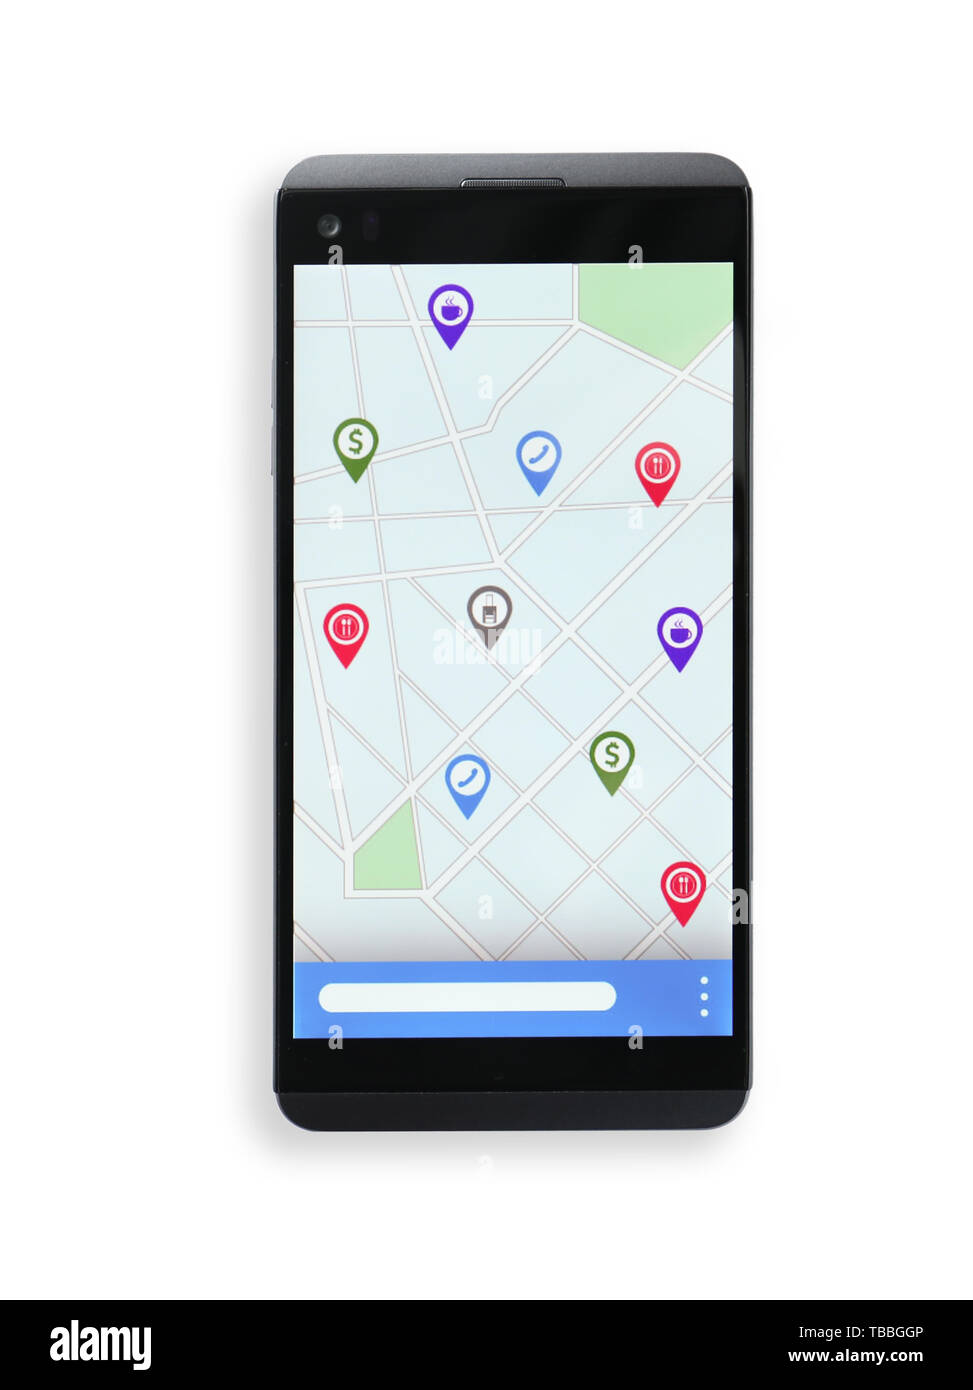 Mobile phone with map and location pointers on screen against white background - Stock Image